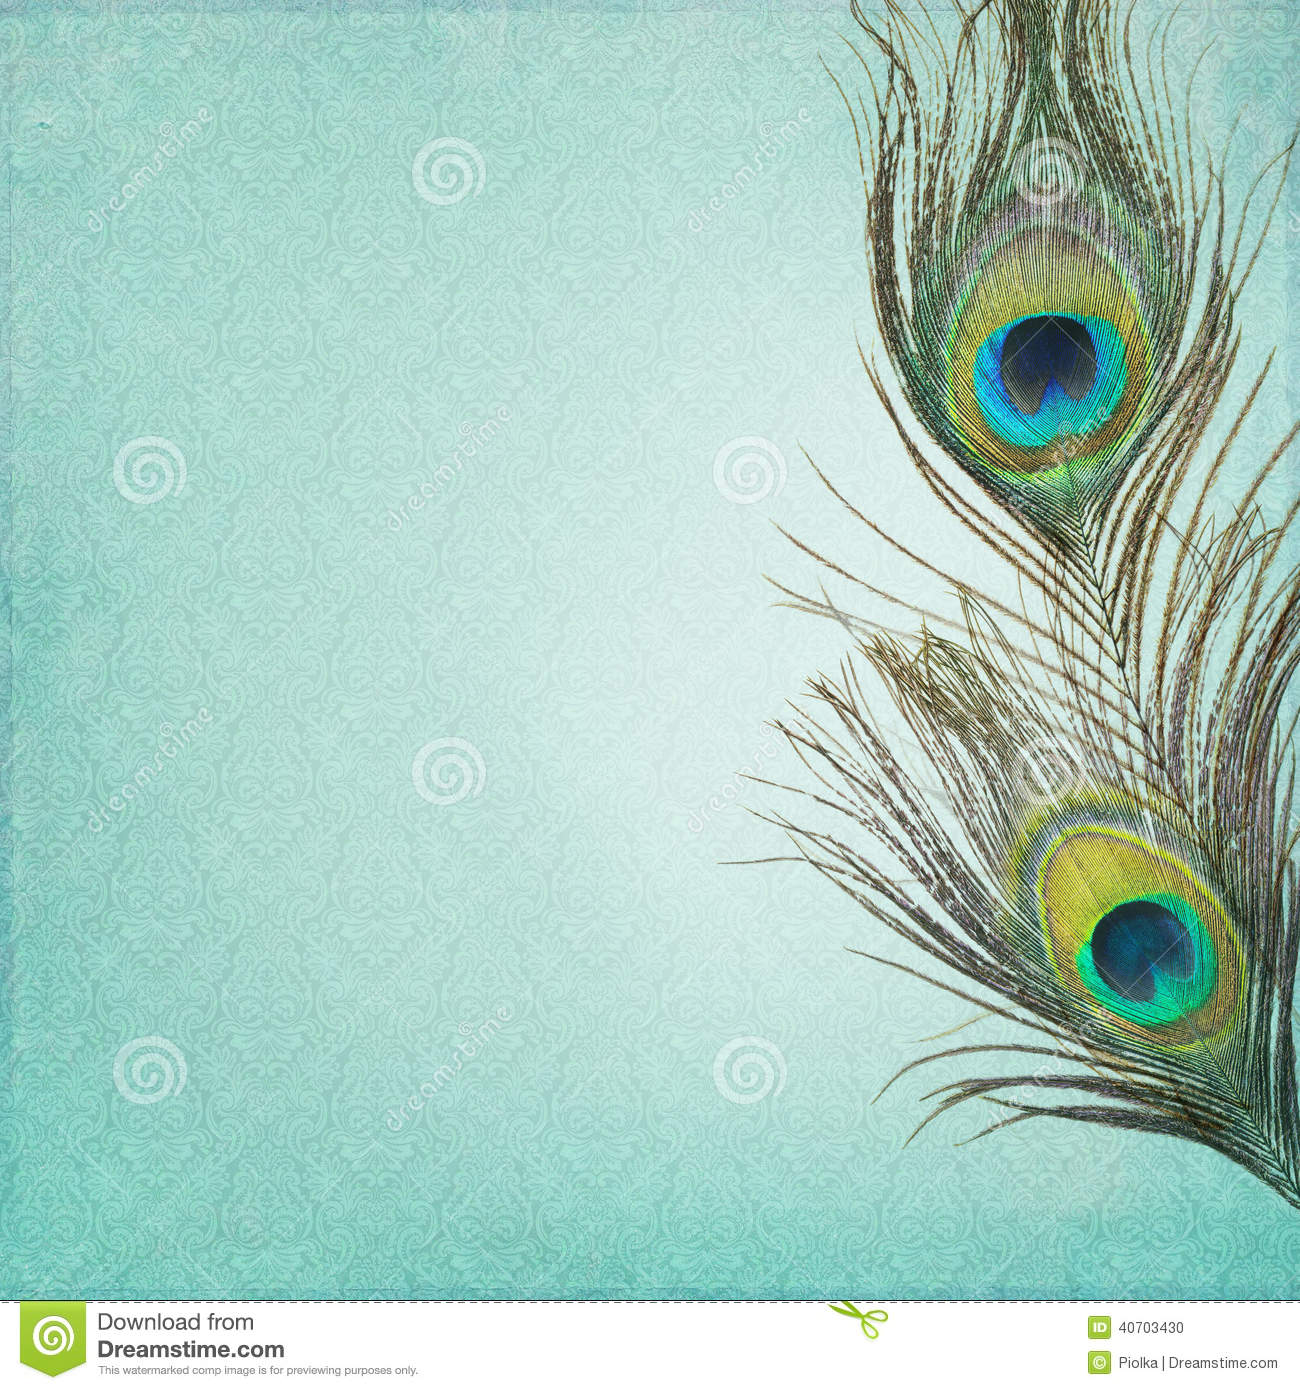 Vintage Background With Peacock Feathers Stock Photo ...